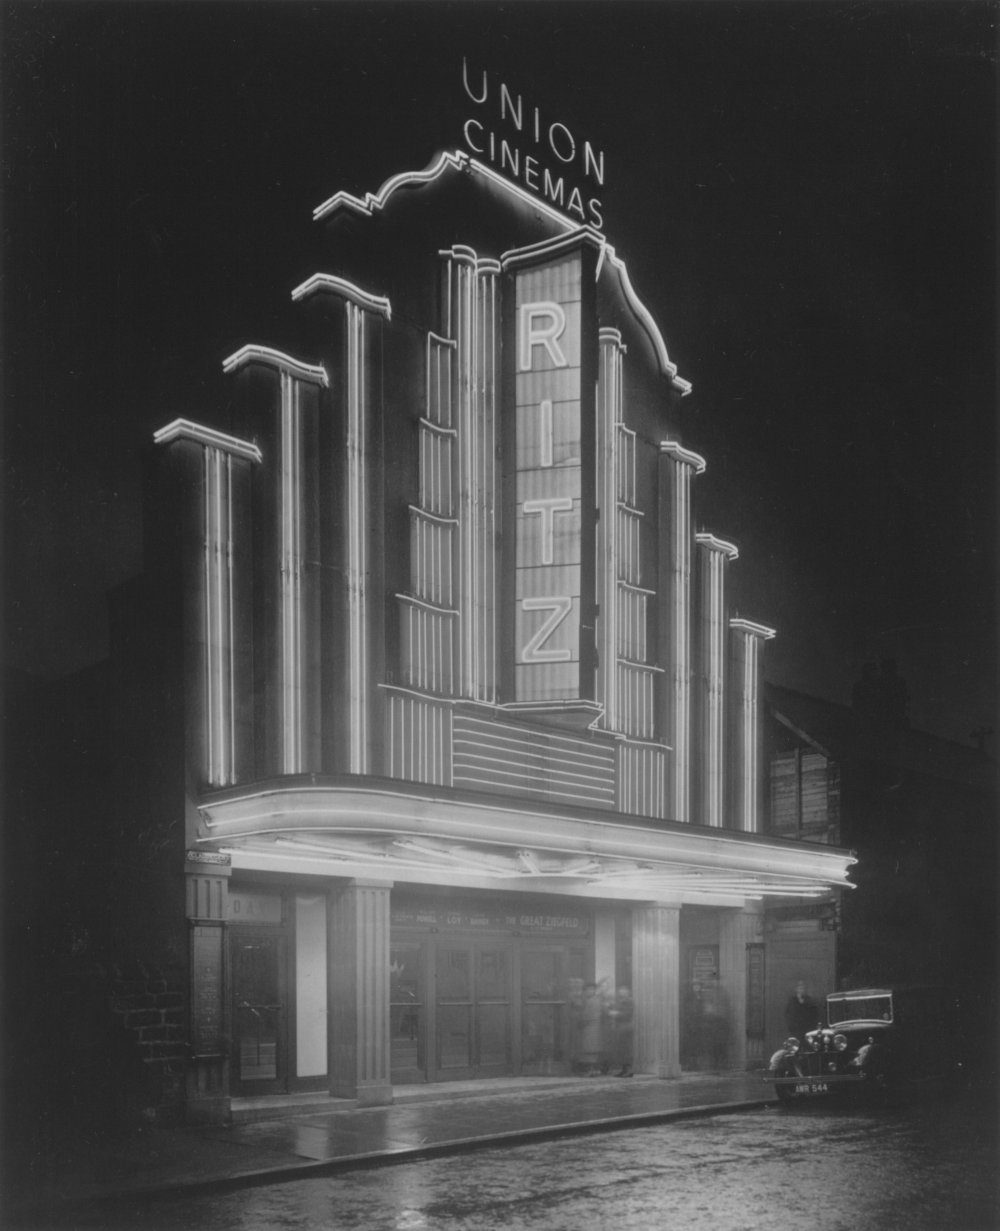 The Ritz, Barnsley, 1937